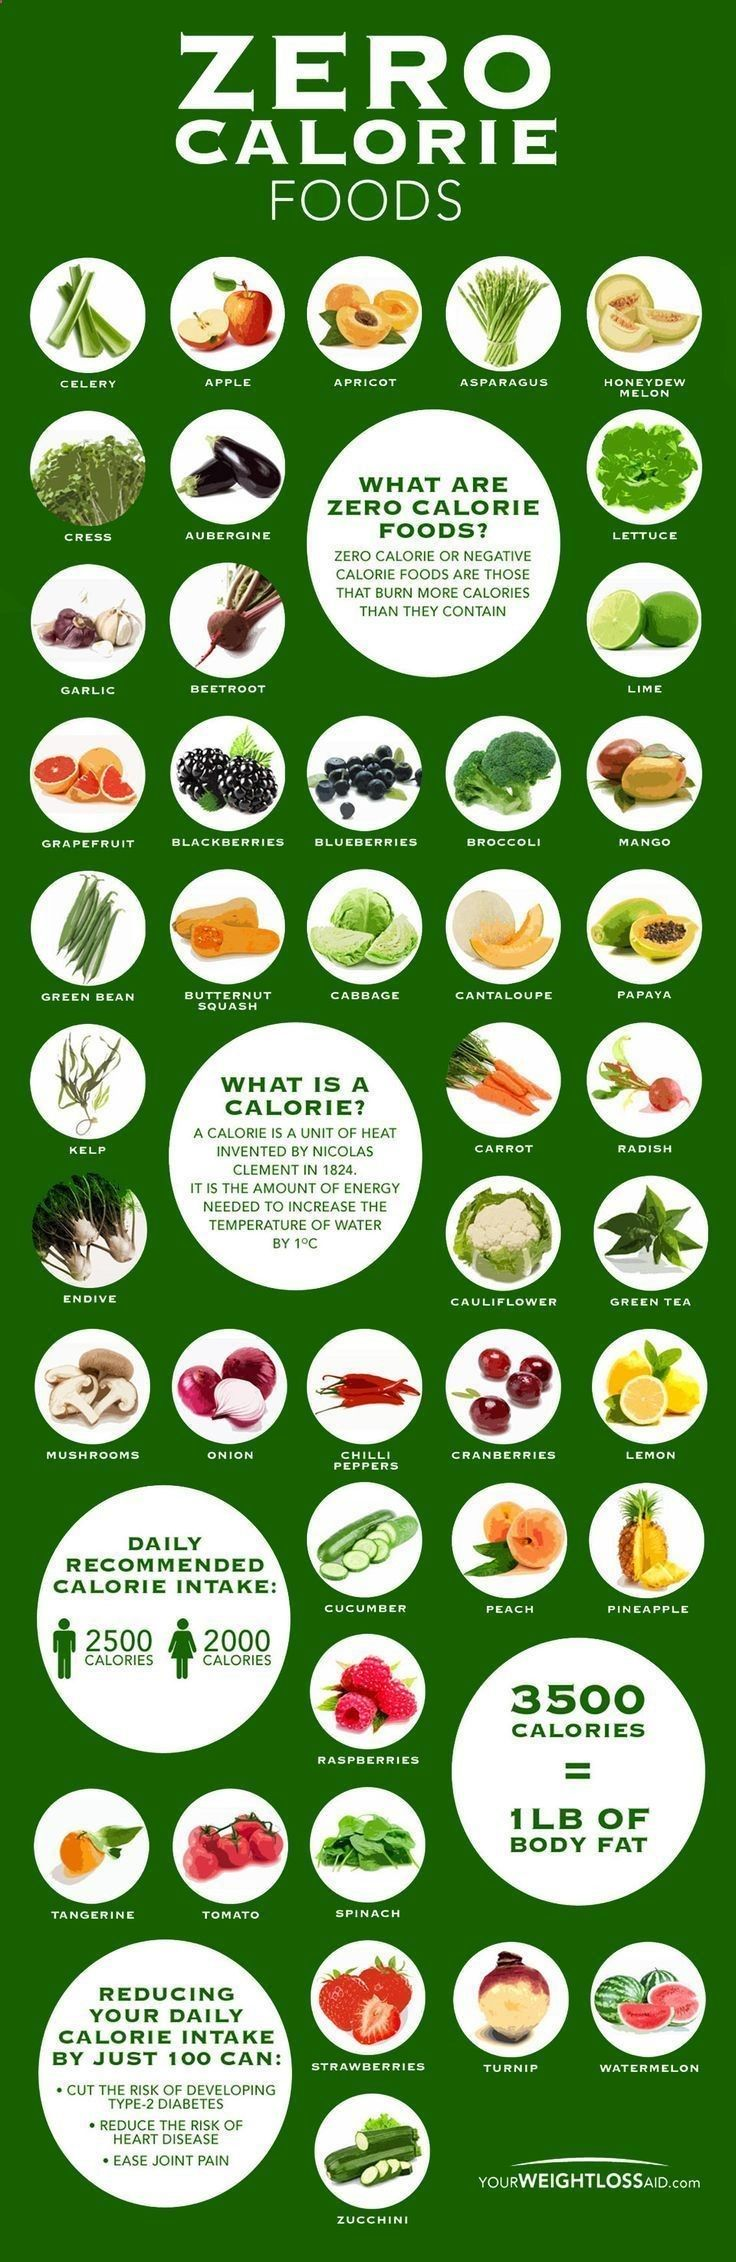 21 best Health images on Pinterest | Healthy living, Home remedies ...